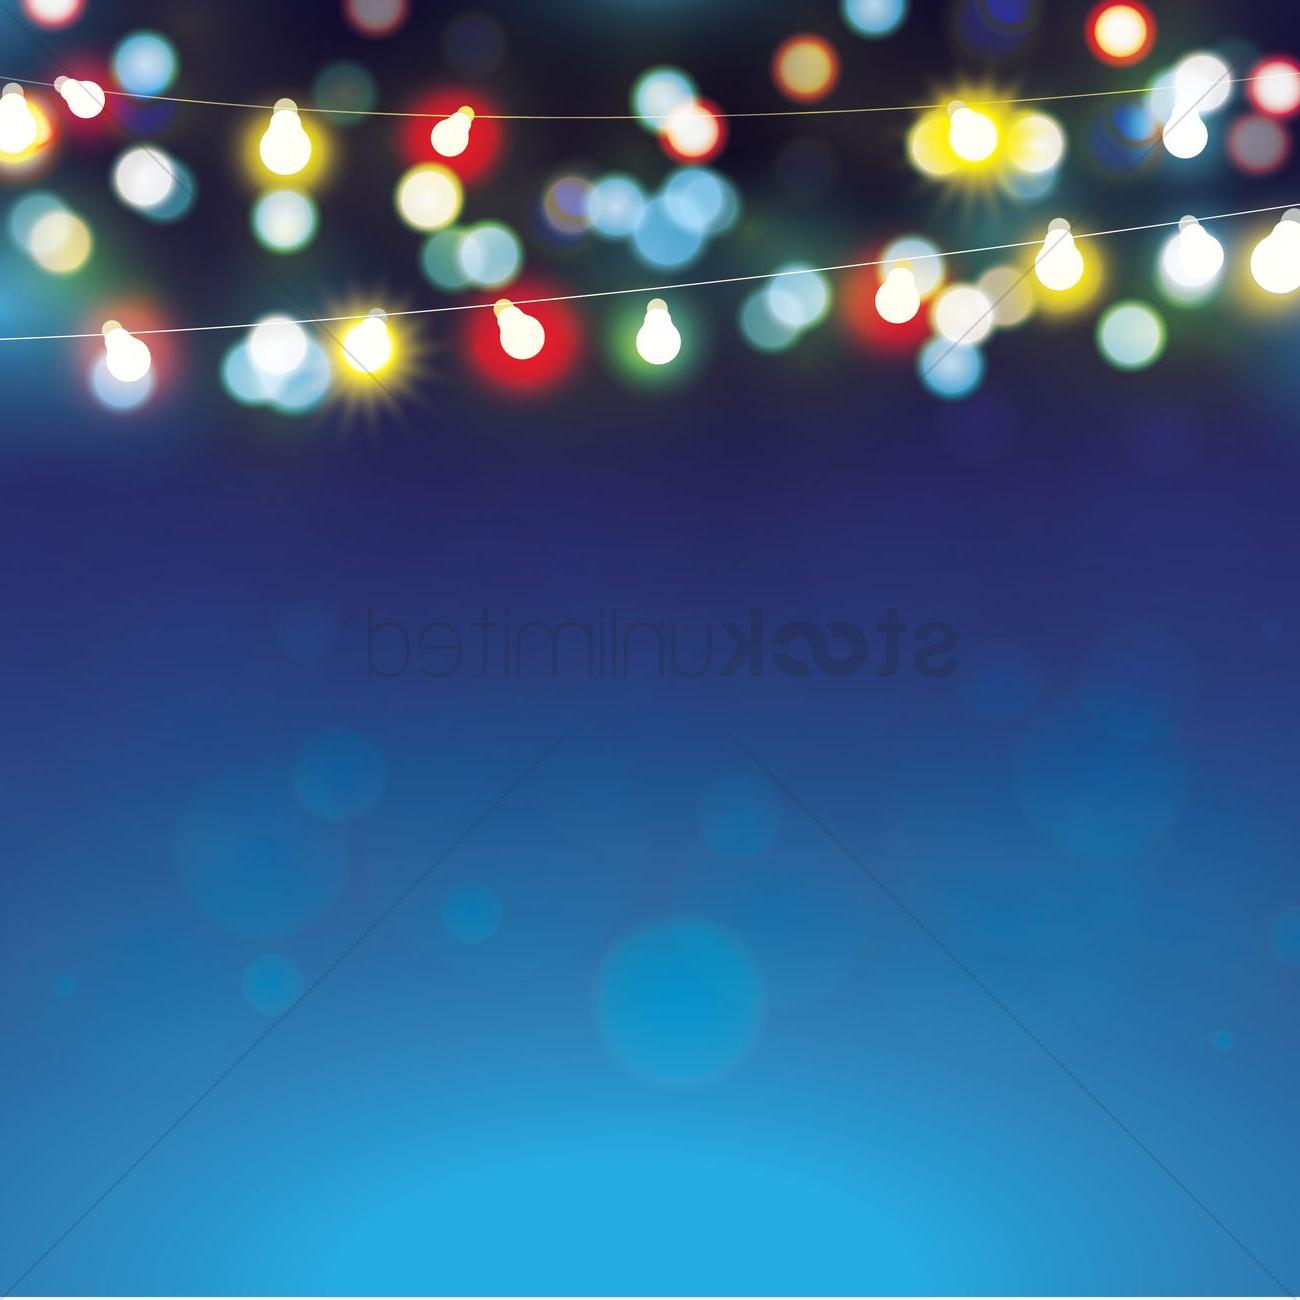 Party lights clipart image royalty free library Unique Party Lights Vector Drawing » Free Vector Art, Images ... image royalty free library